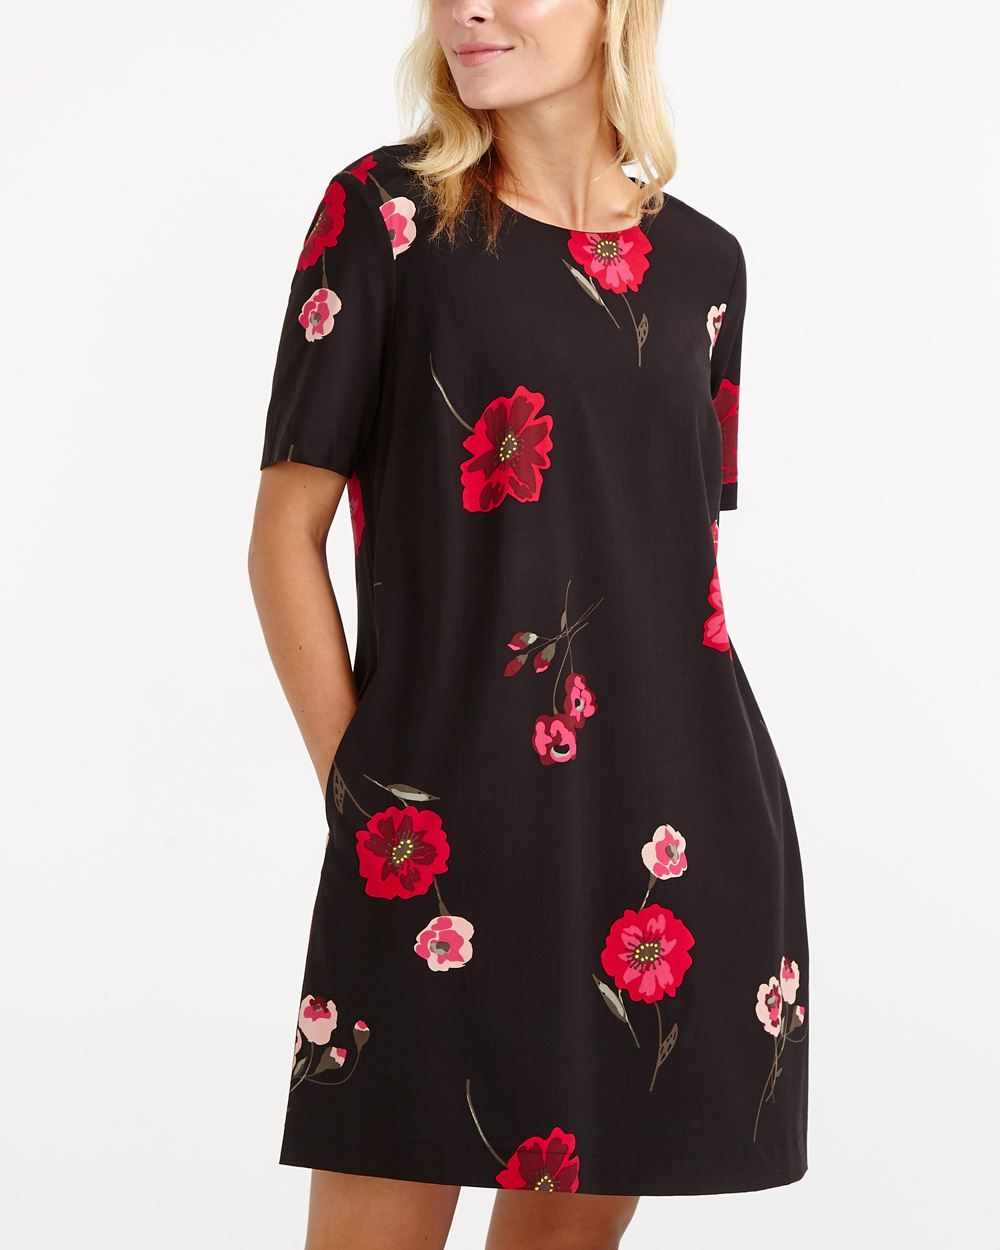 This short sleeve floral swing dress will make you feel pretty